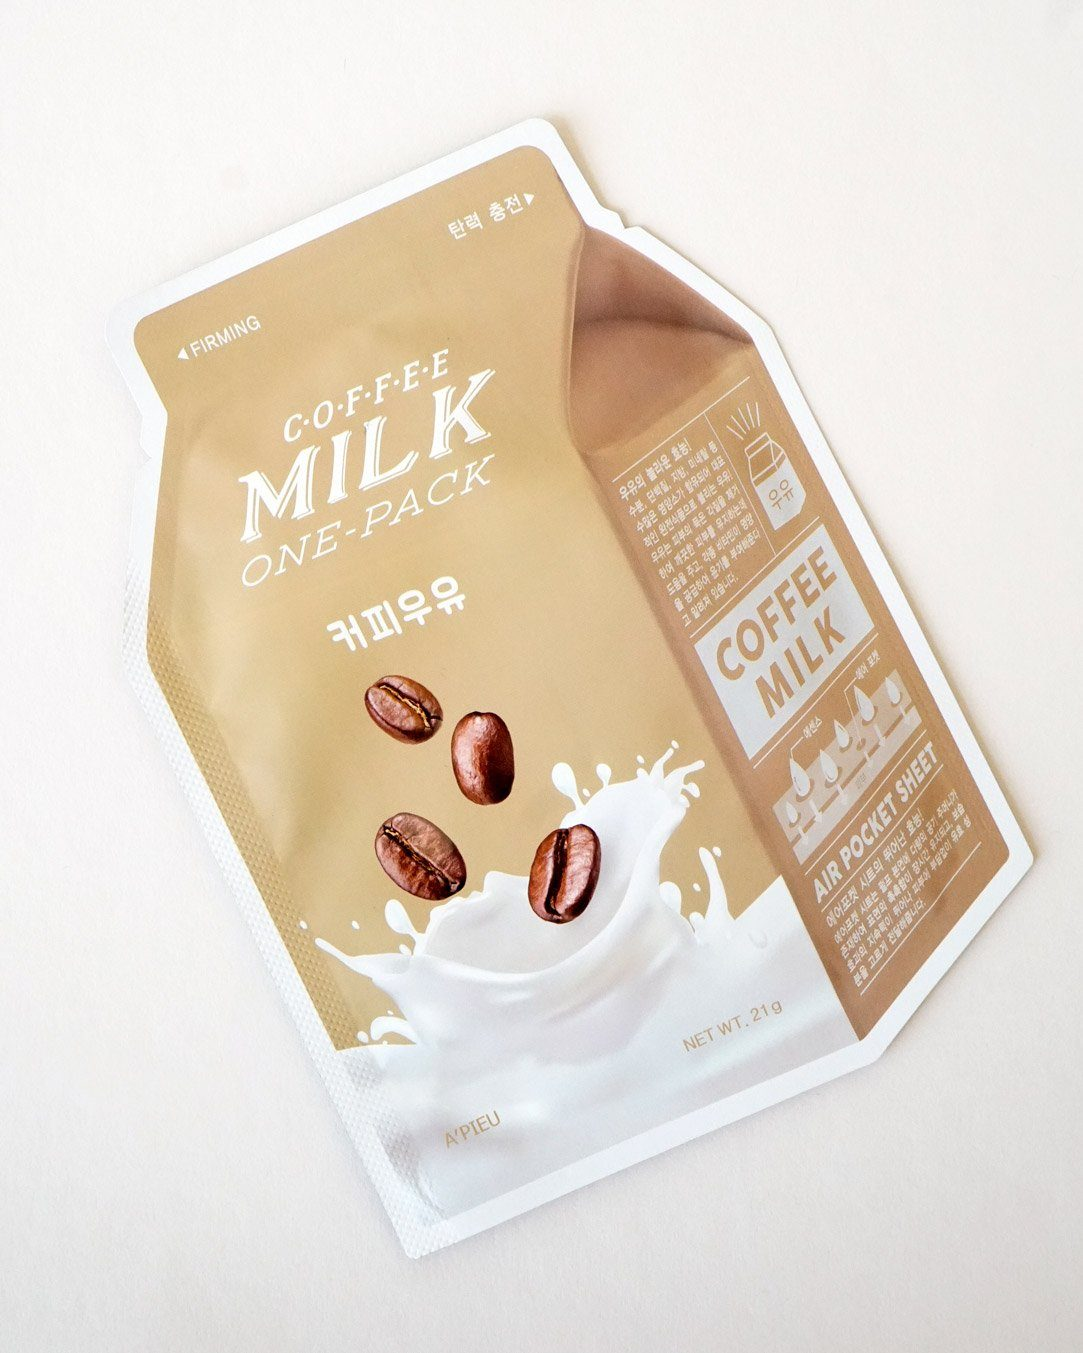 A'PIEU Coffee Milk Sheet Mask 4 Pack, sheet mask, skin care, skincare